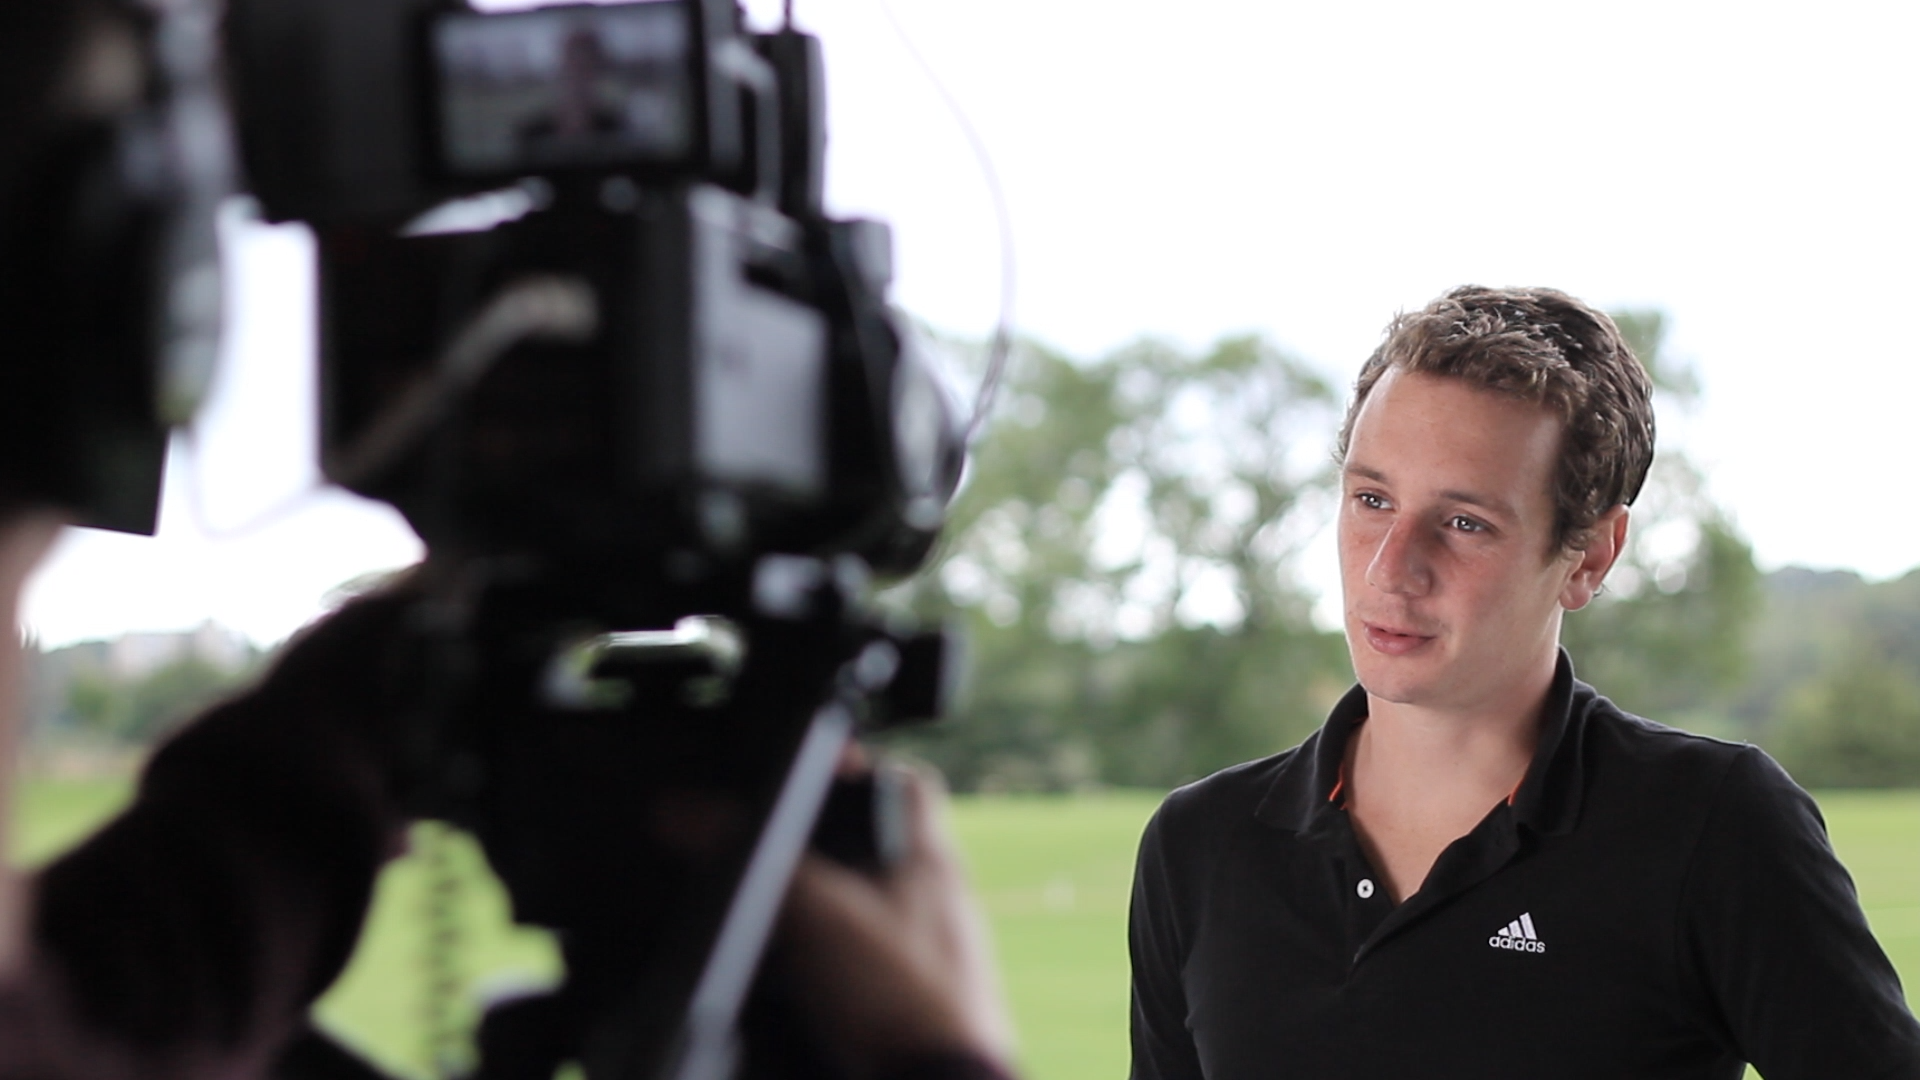 Brownlee | Motiv Productions - Creating Video for Business